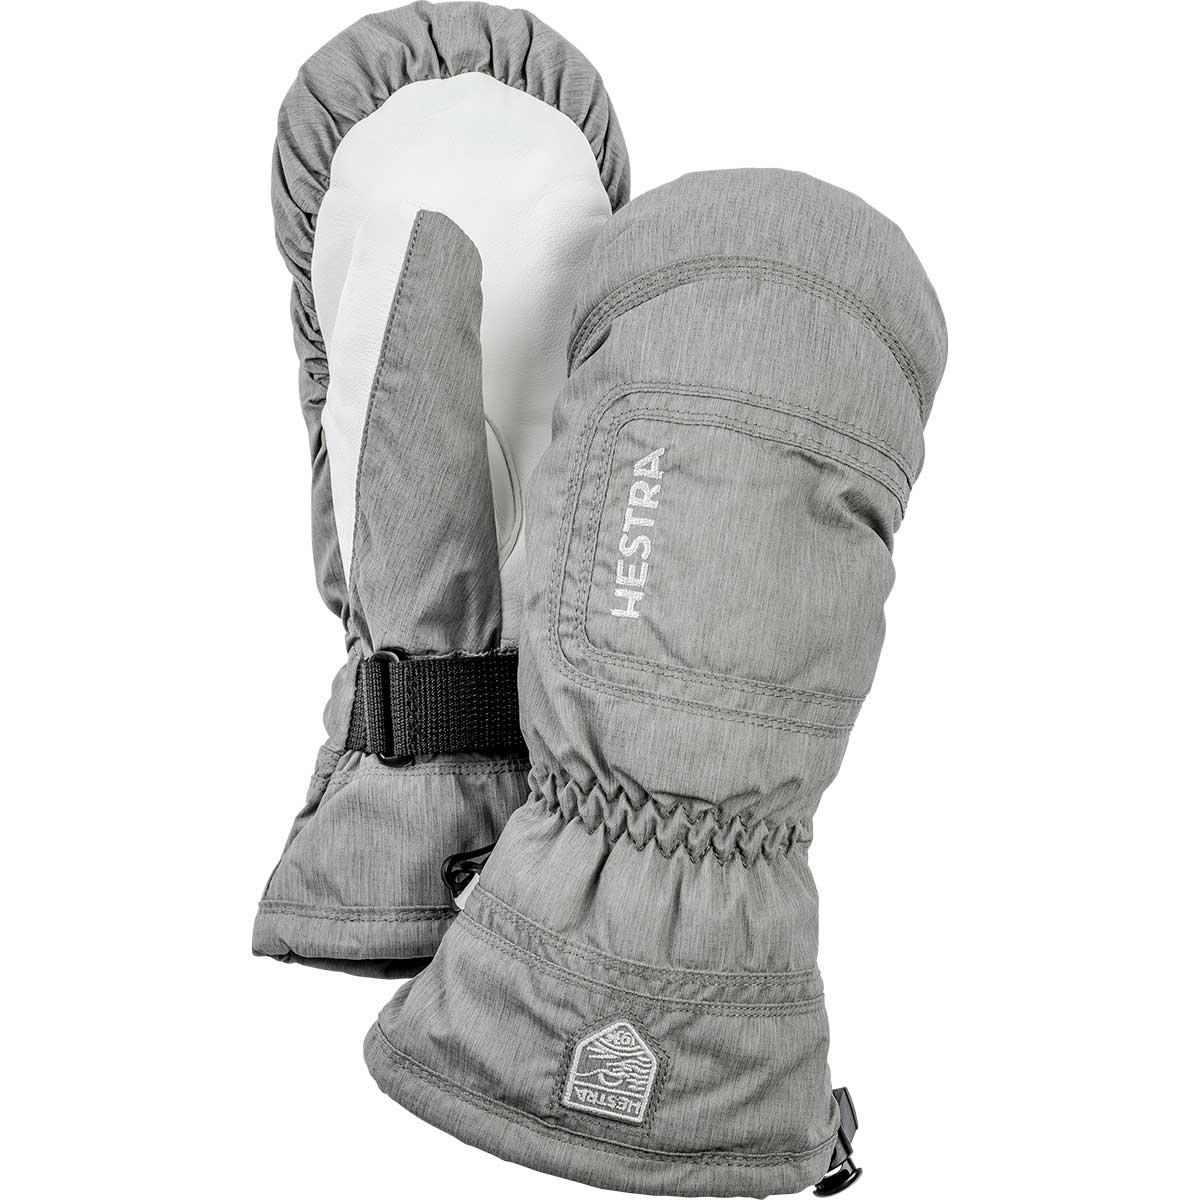 Hestra women's CZone Powder Mitt in grey and off white